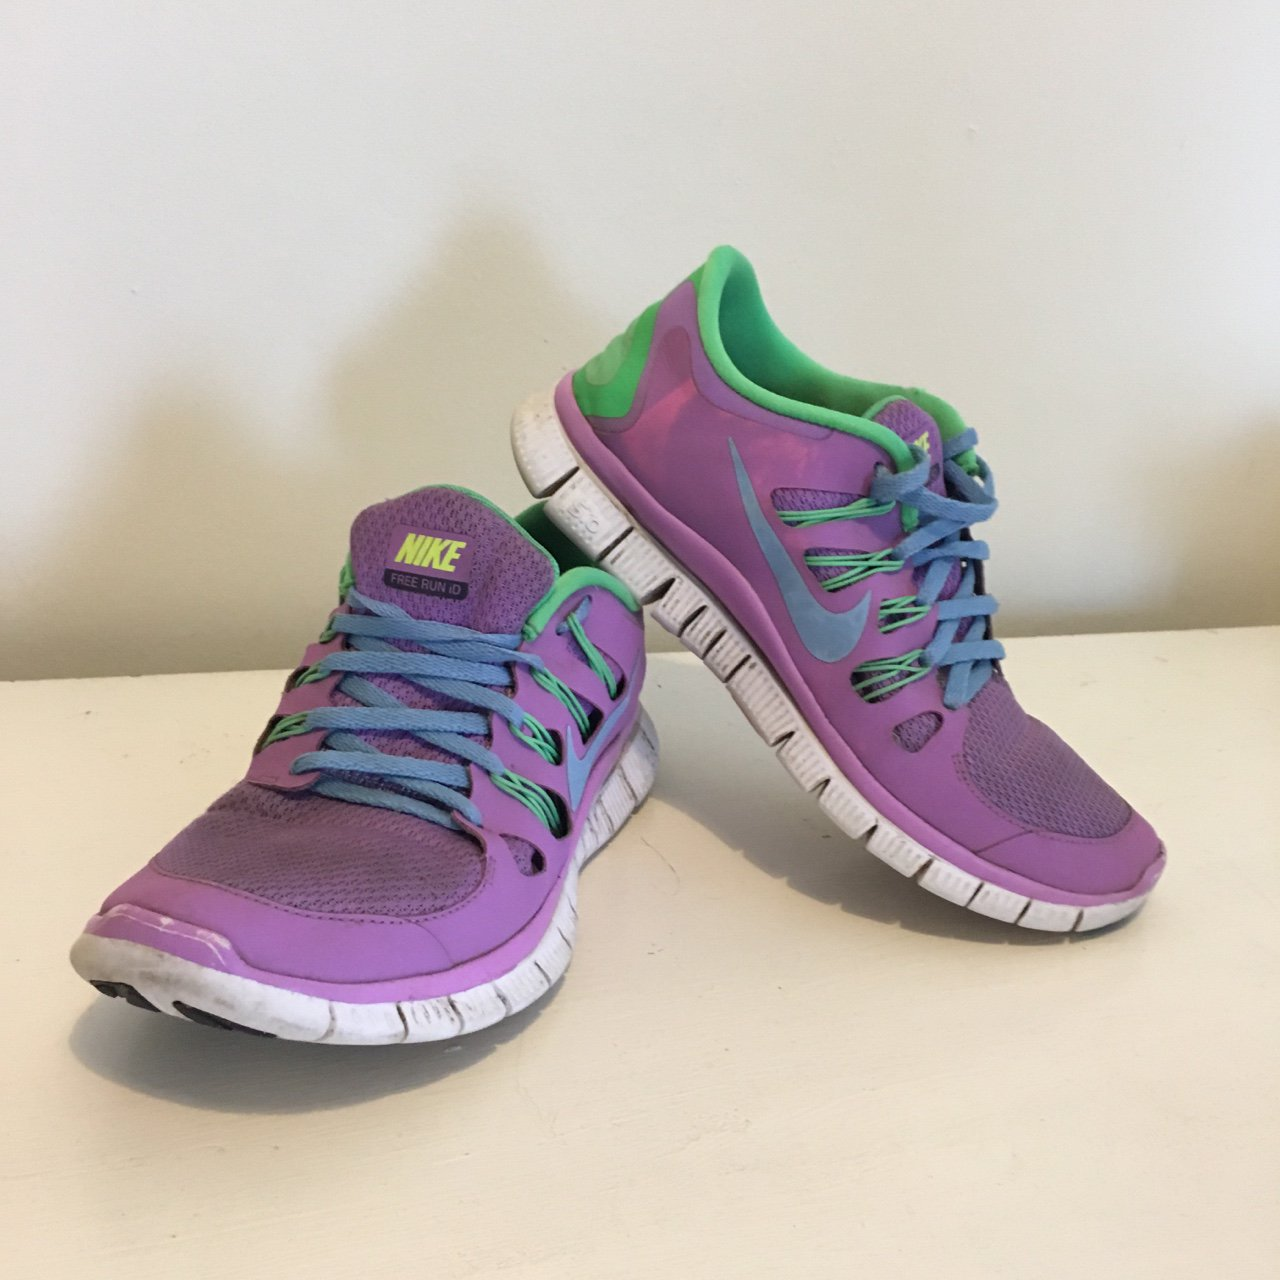 huge discount 8fc4c 0cd0d Nike Free Run Trainers   free runners Purple with blue laces - Depop